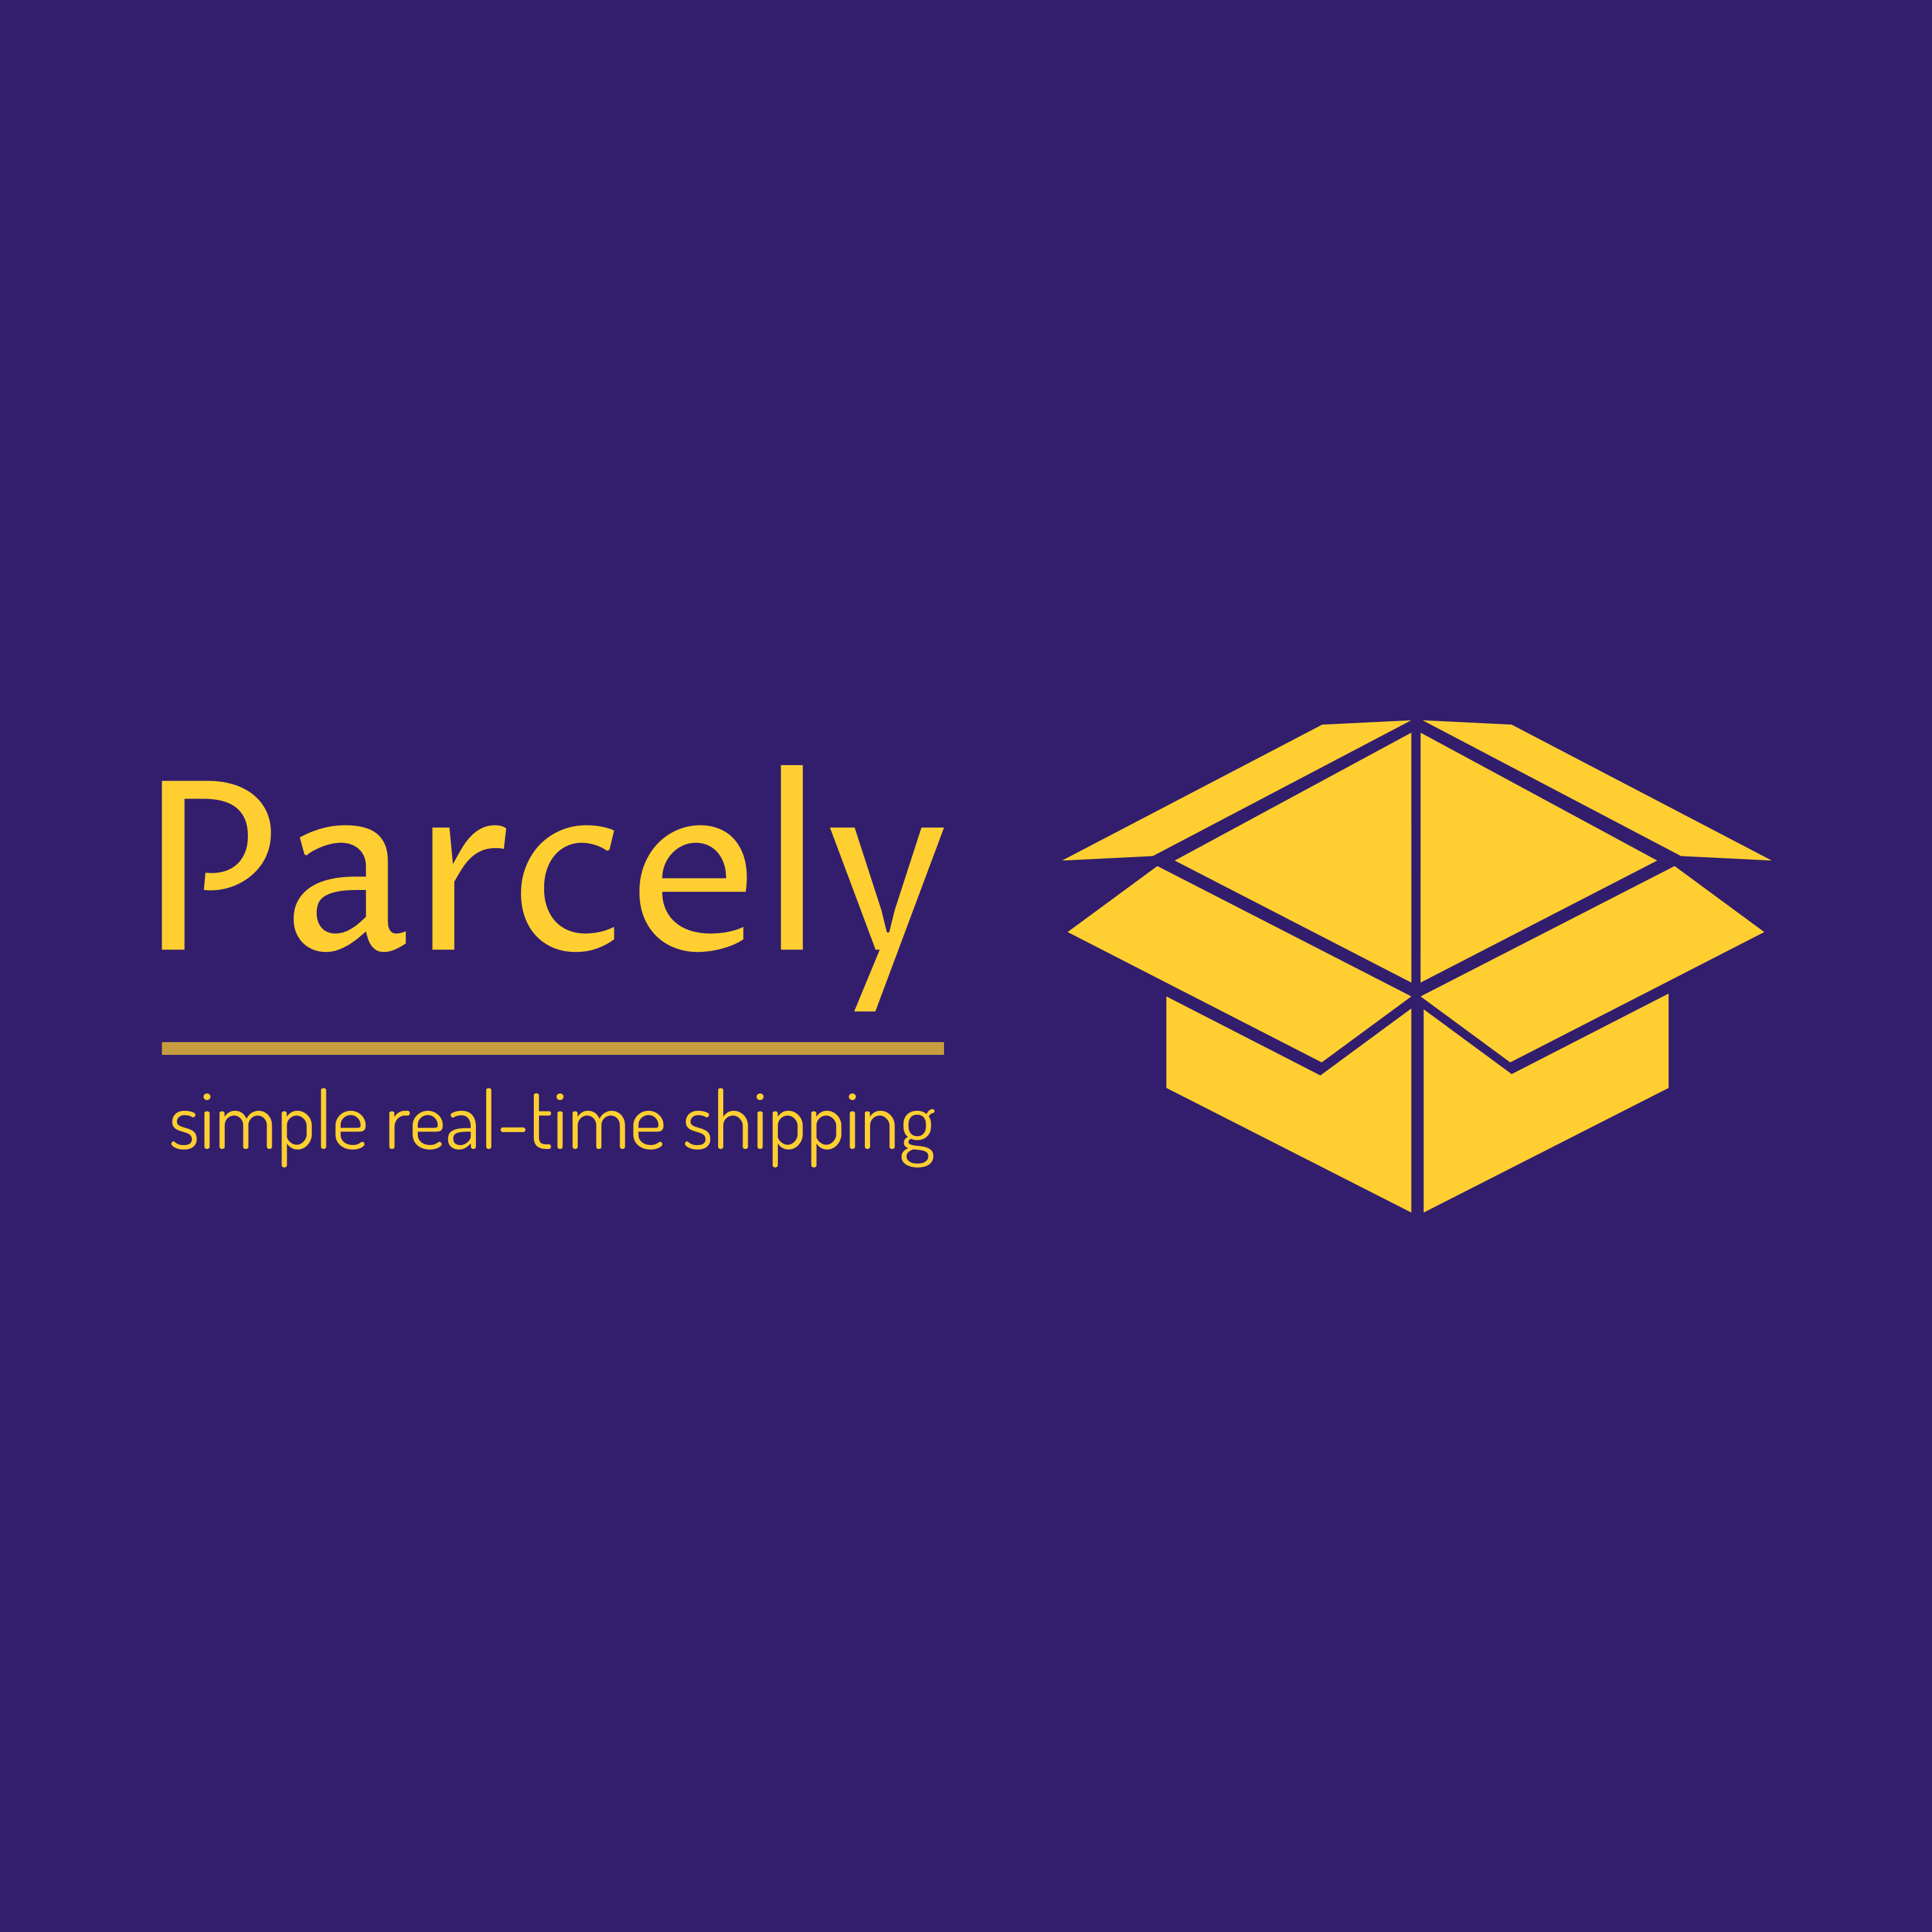 Parcely